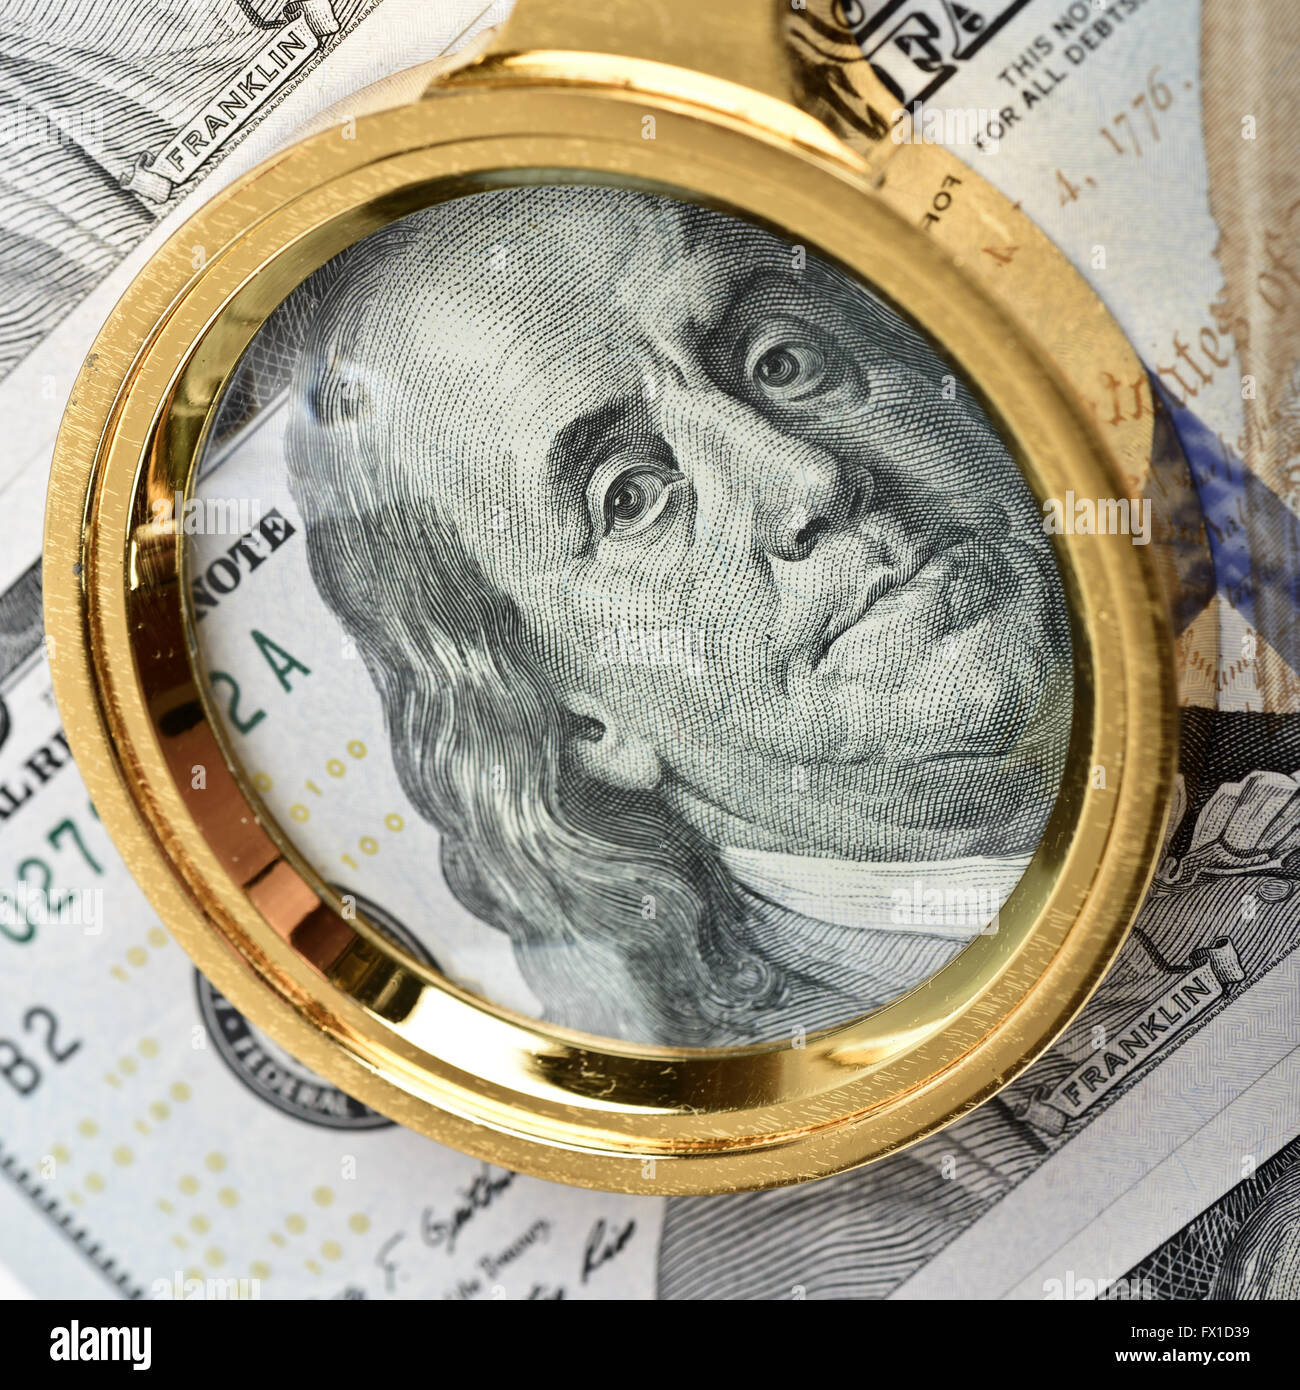 Magnifying Glass on the Franklin hundred dollars - Stock Image